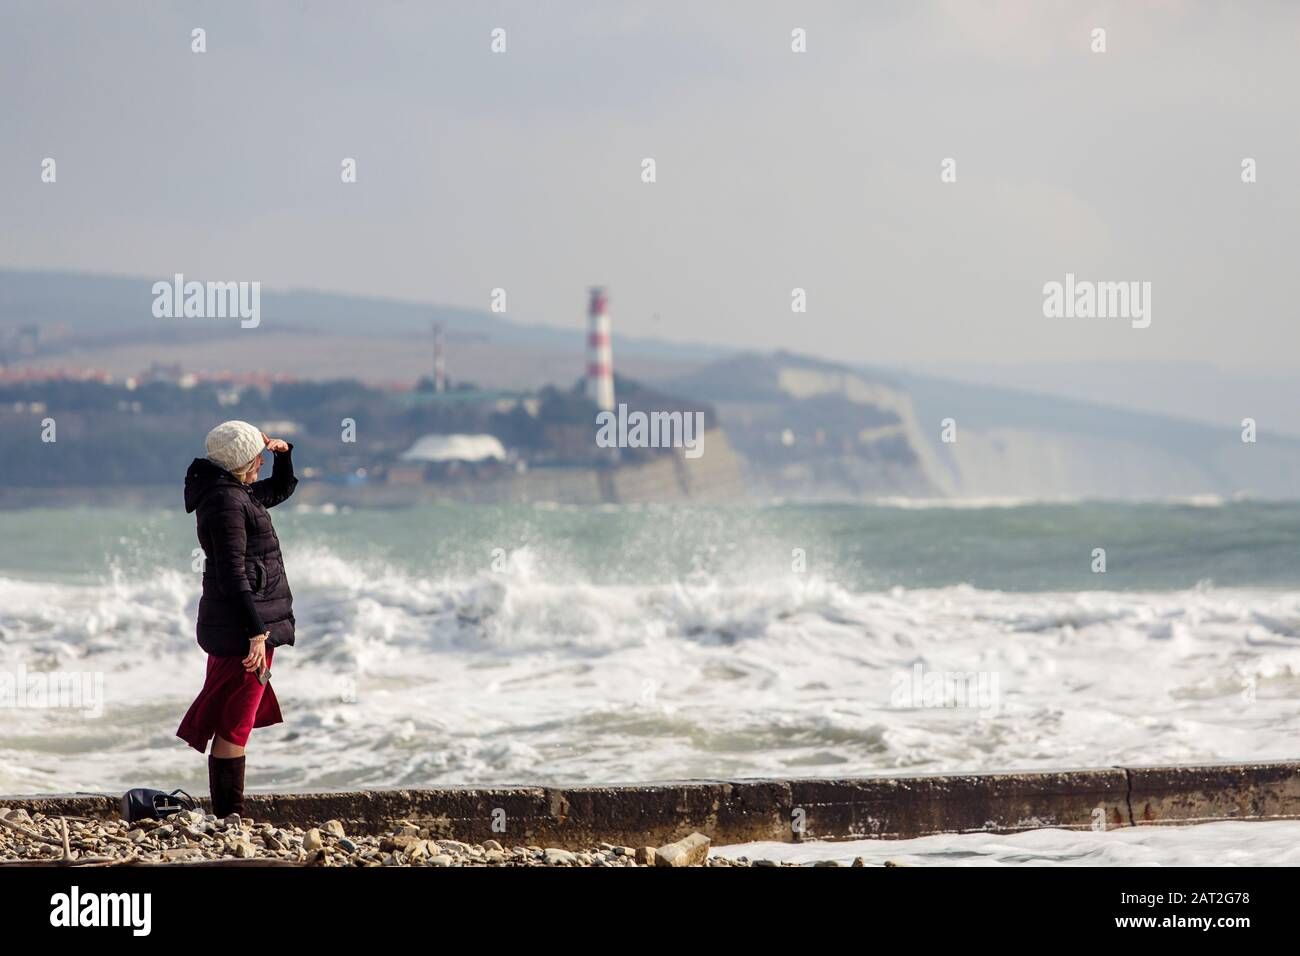 the girl looks out to sea at the raging storm waves. In the background, foam waves, lighthouse and rocks. The girl is dressed in a black jacket, white Stock Photo